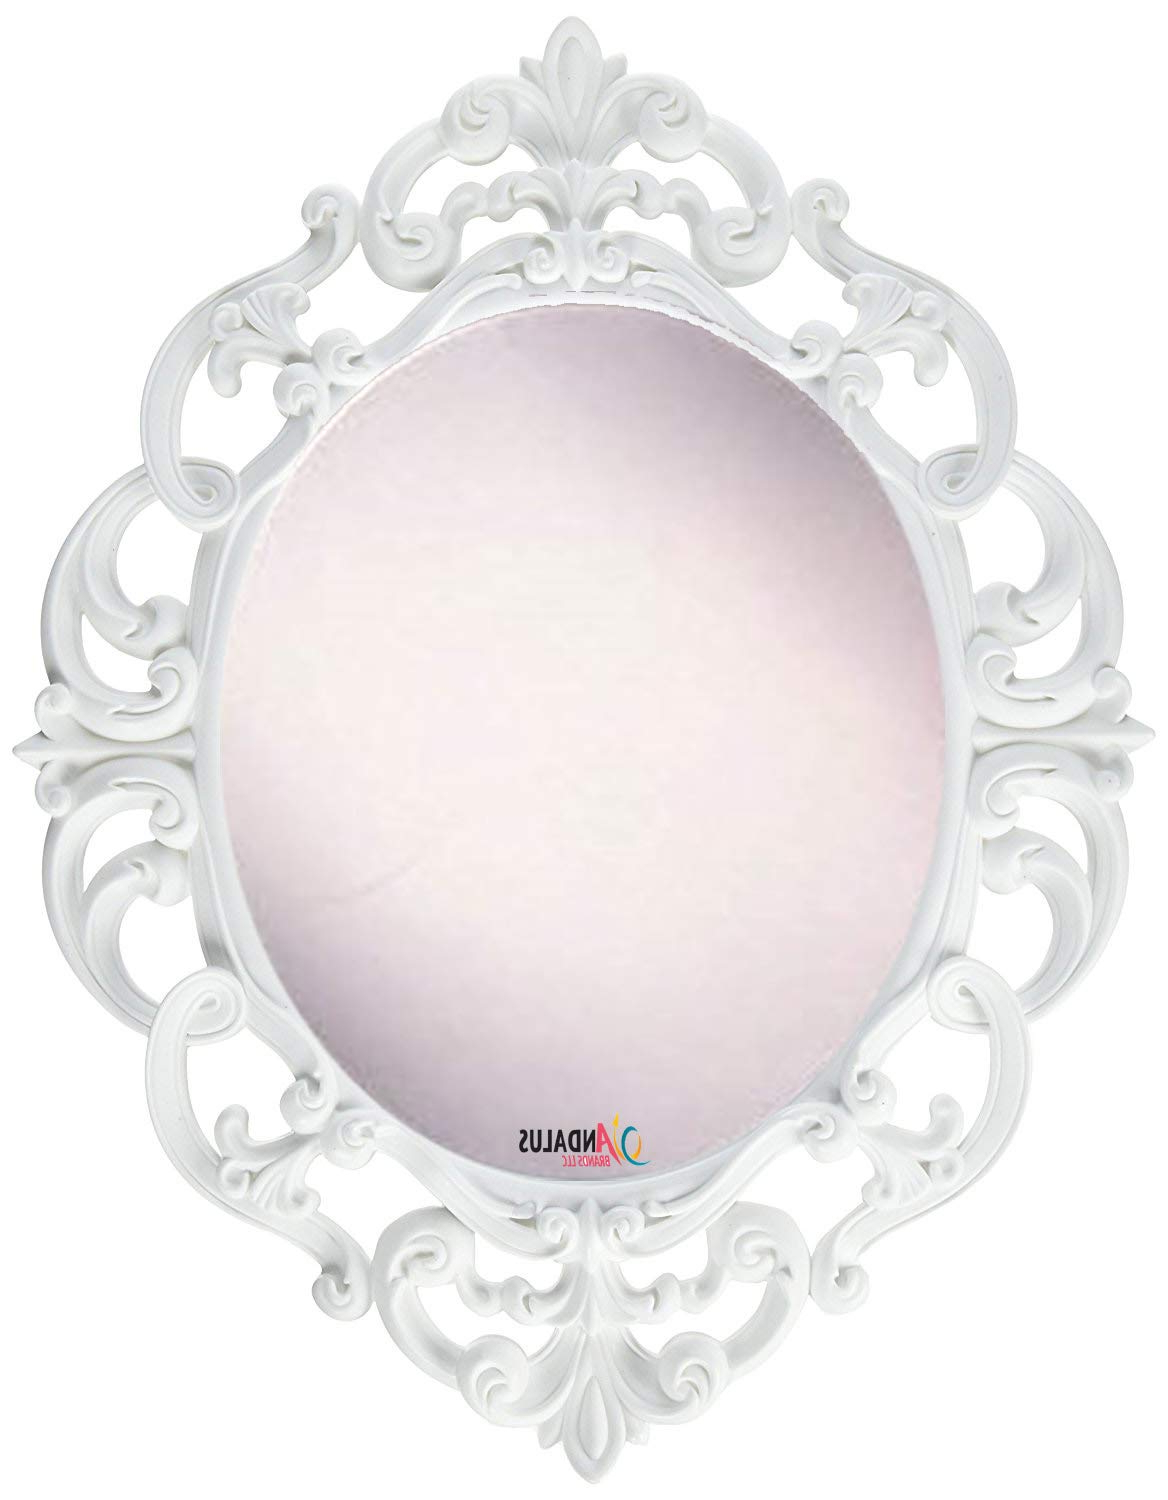 Small White Wall Mirrors Pertaining To Most Recently Released Andalus Small White Oval Vintage Wall Mirror, Ornate Frame, (View 4 of 20)